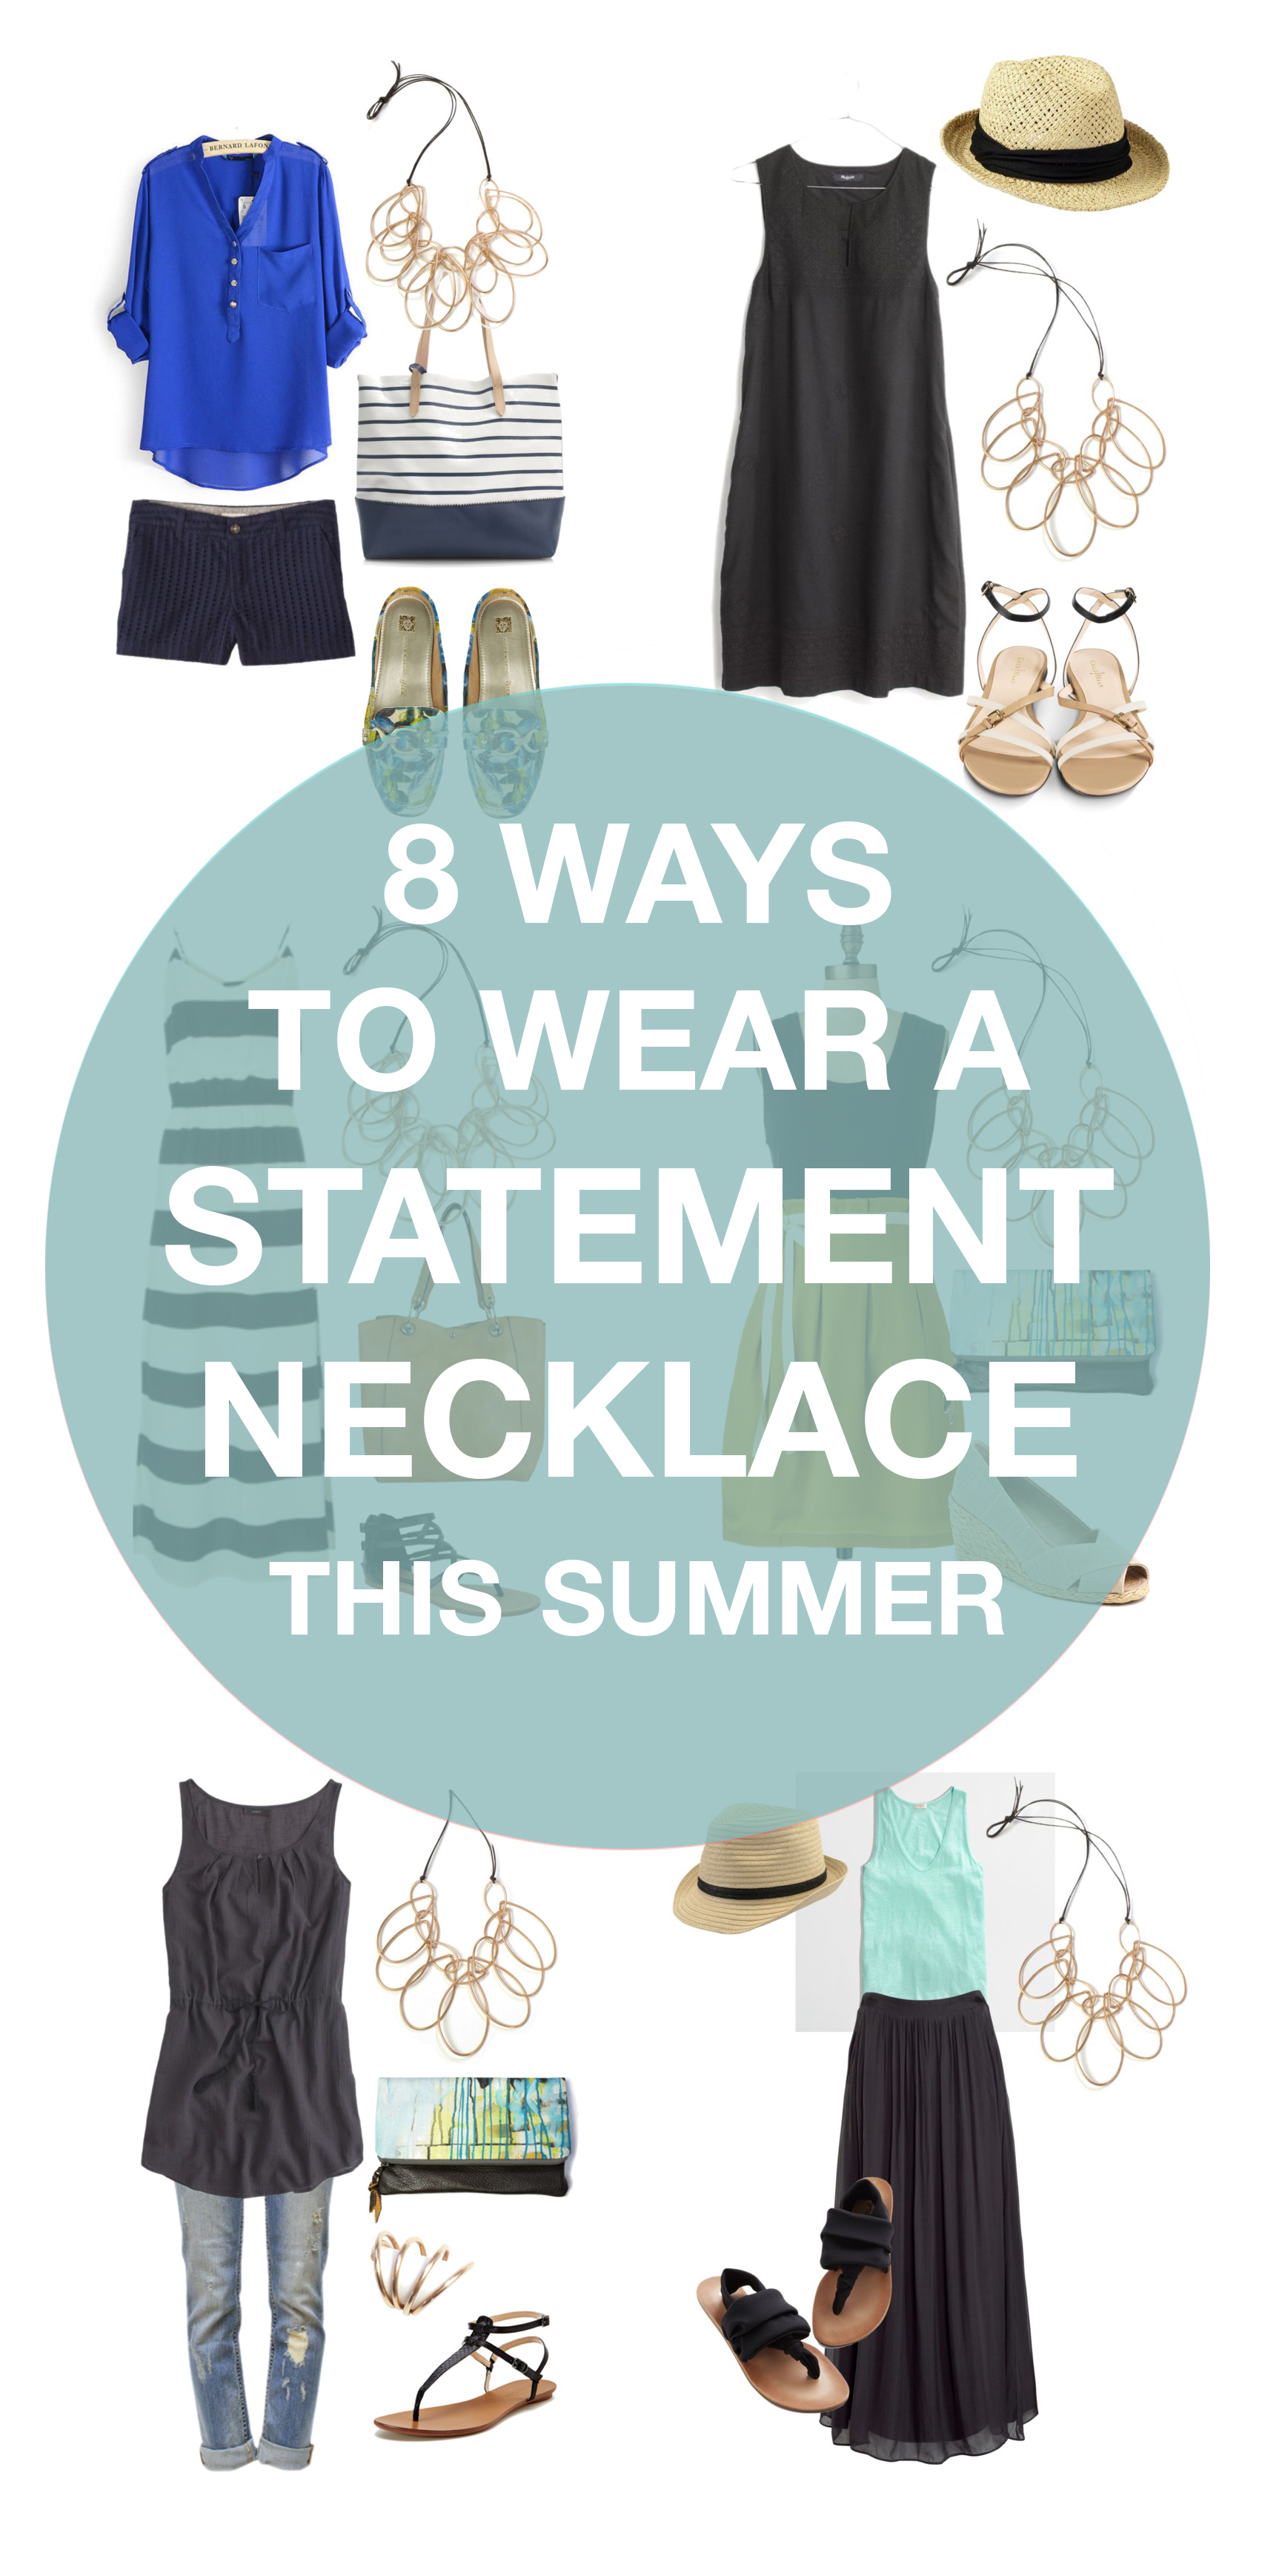 how to wear a statement necklace in summer: 8 outfit ideas to try // via megan auman